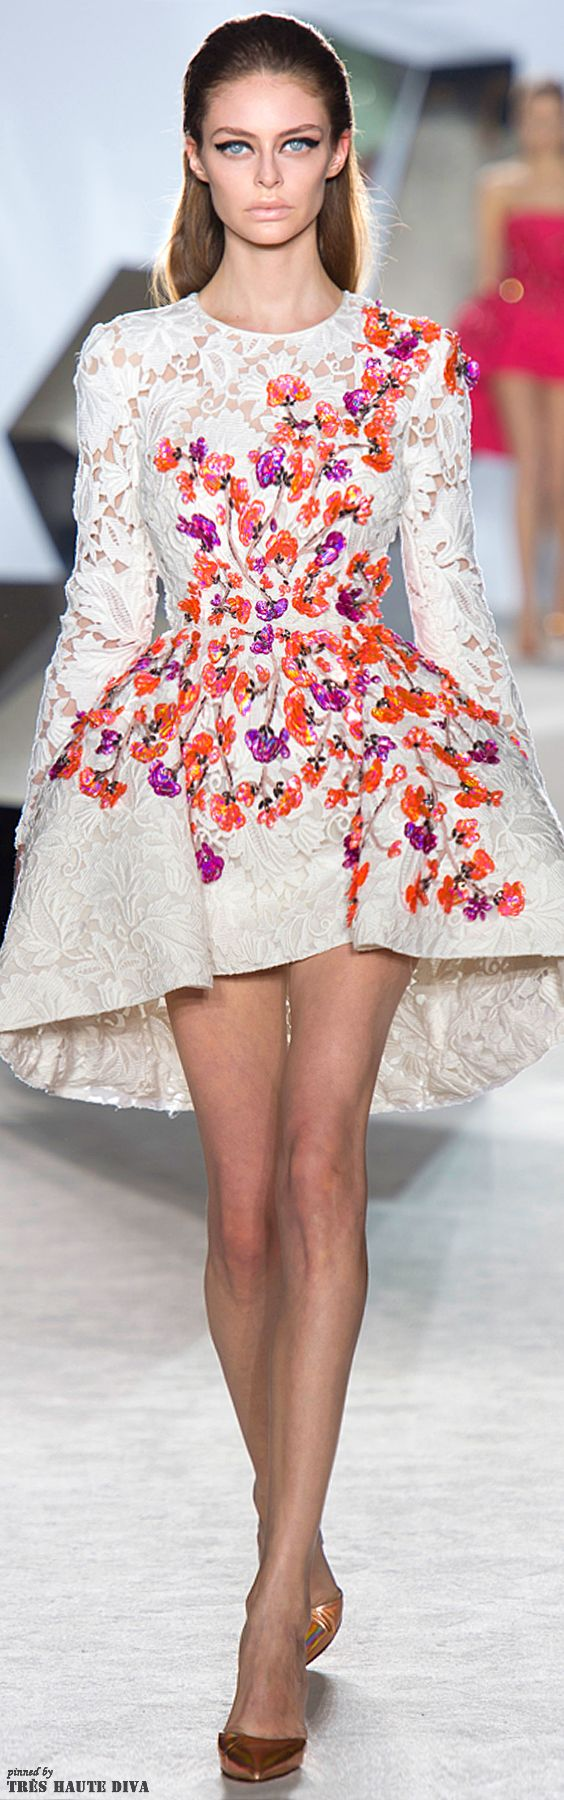 More than obsessed ❤️ | Giambattista Valli Spring 2014 Couture www.vogue.com/...